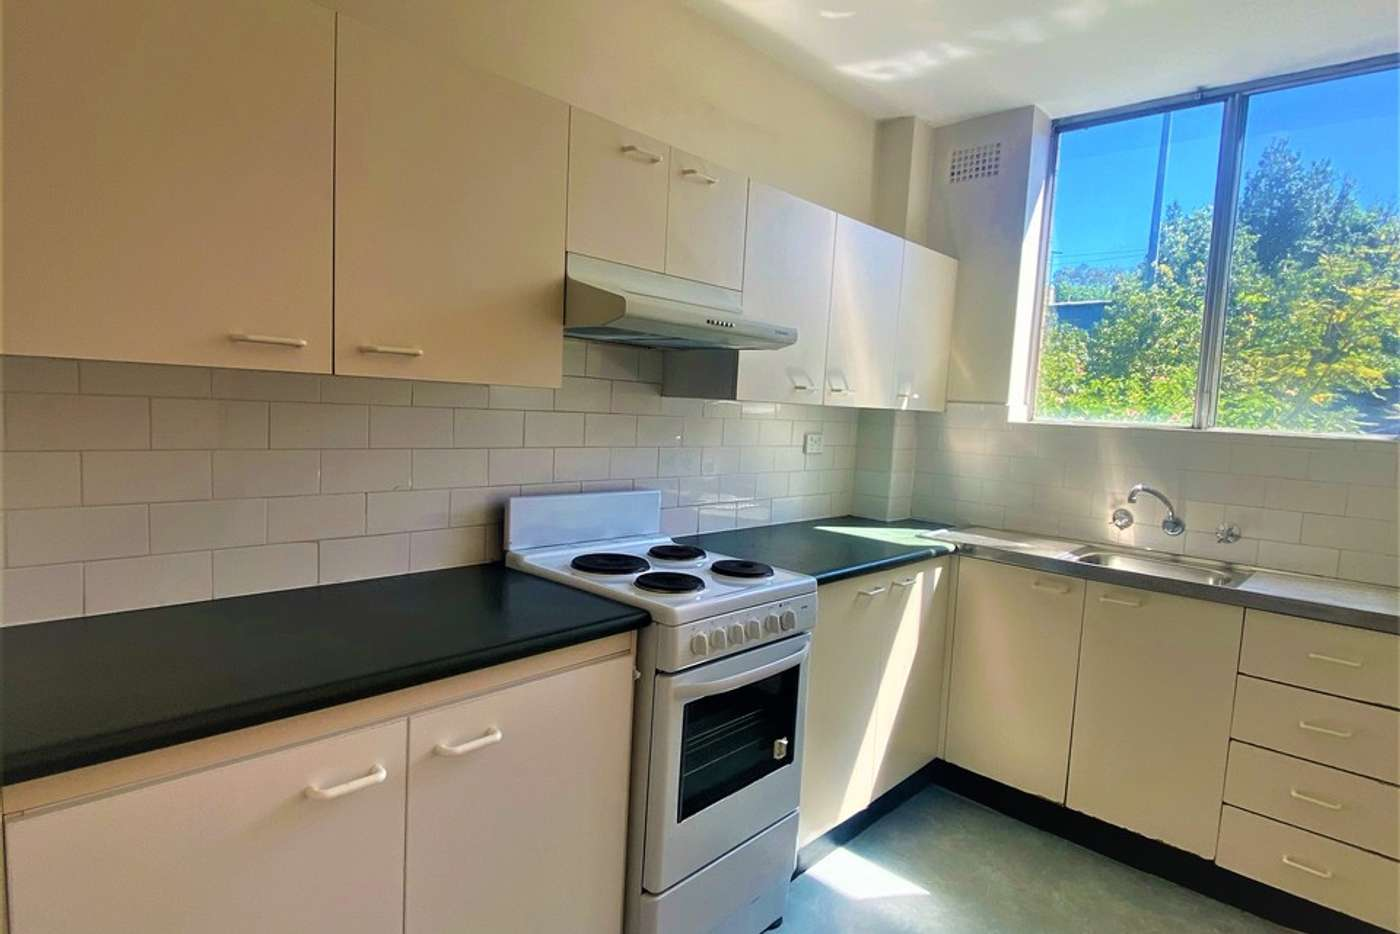 Main view of Homely apartment listing, 5/2 Adelaide Street, West Ryde NSW 2114